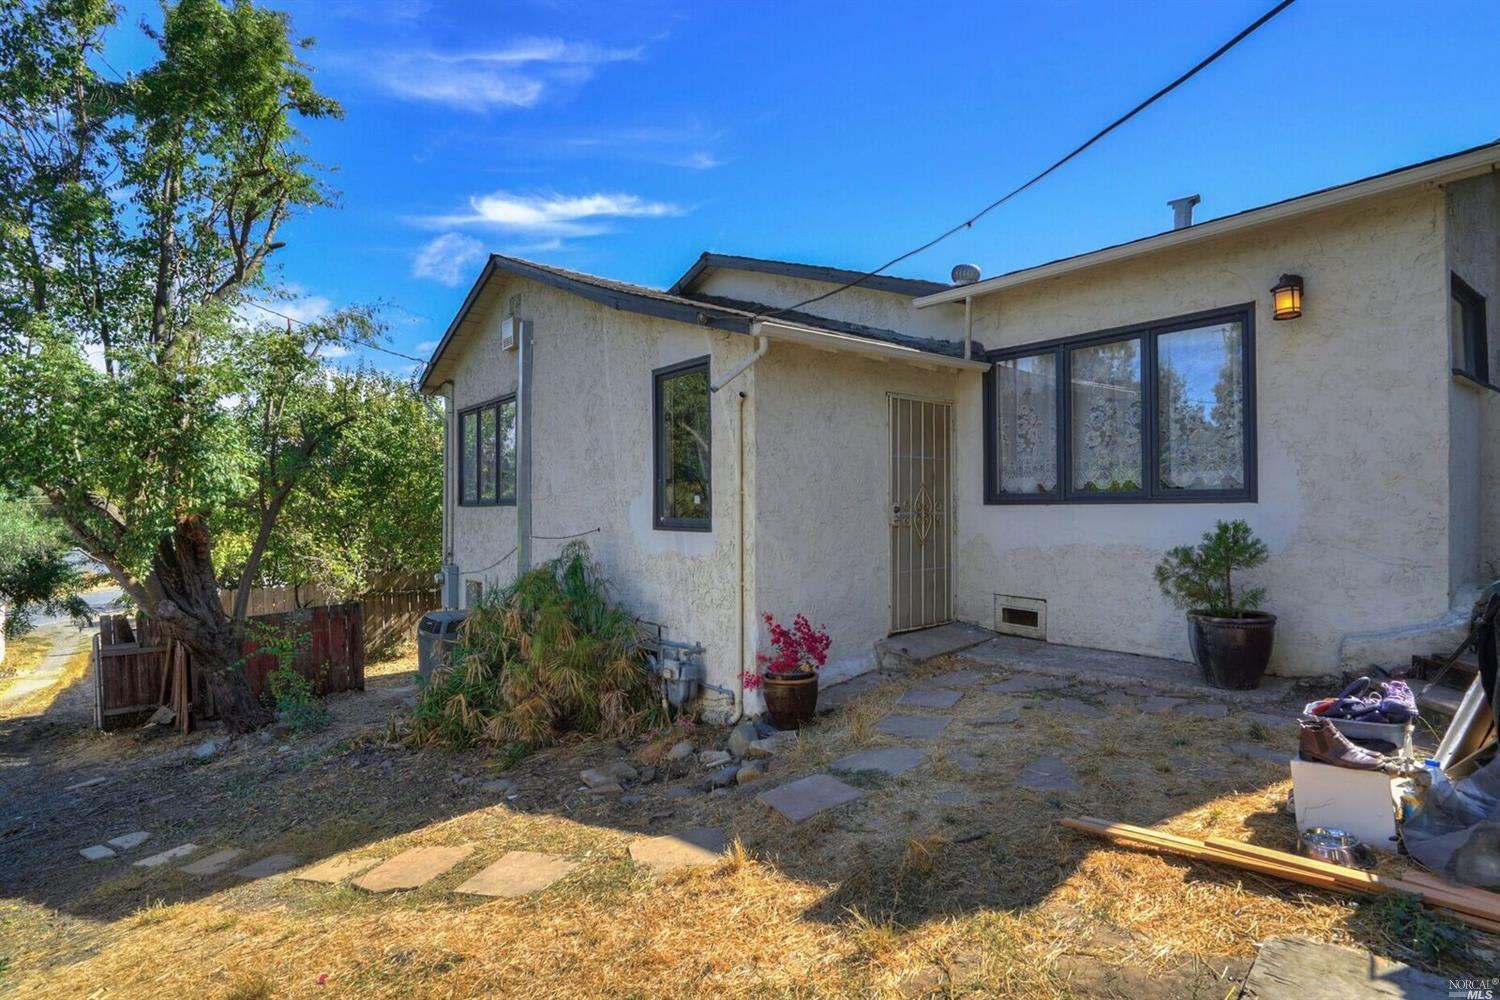 1123 Taylor Ave photo